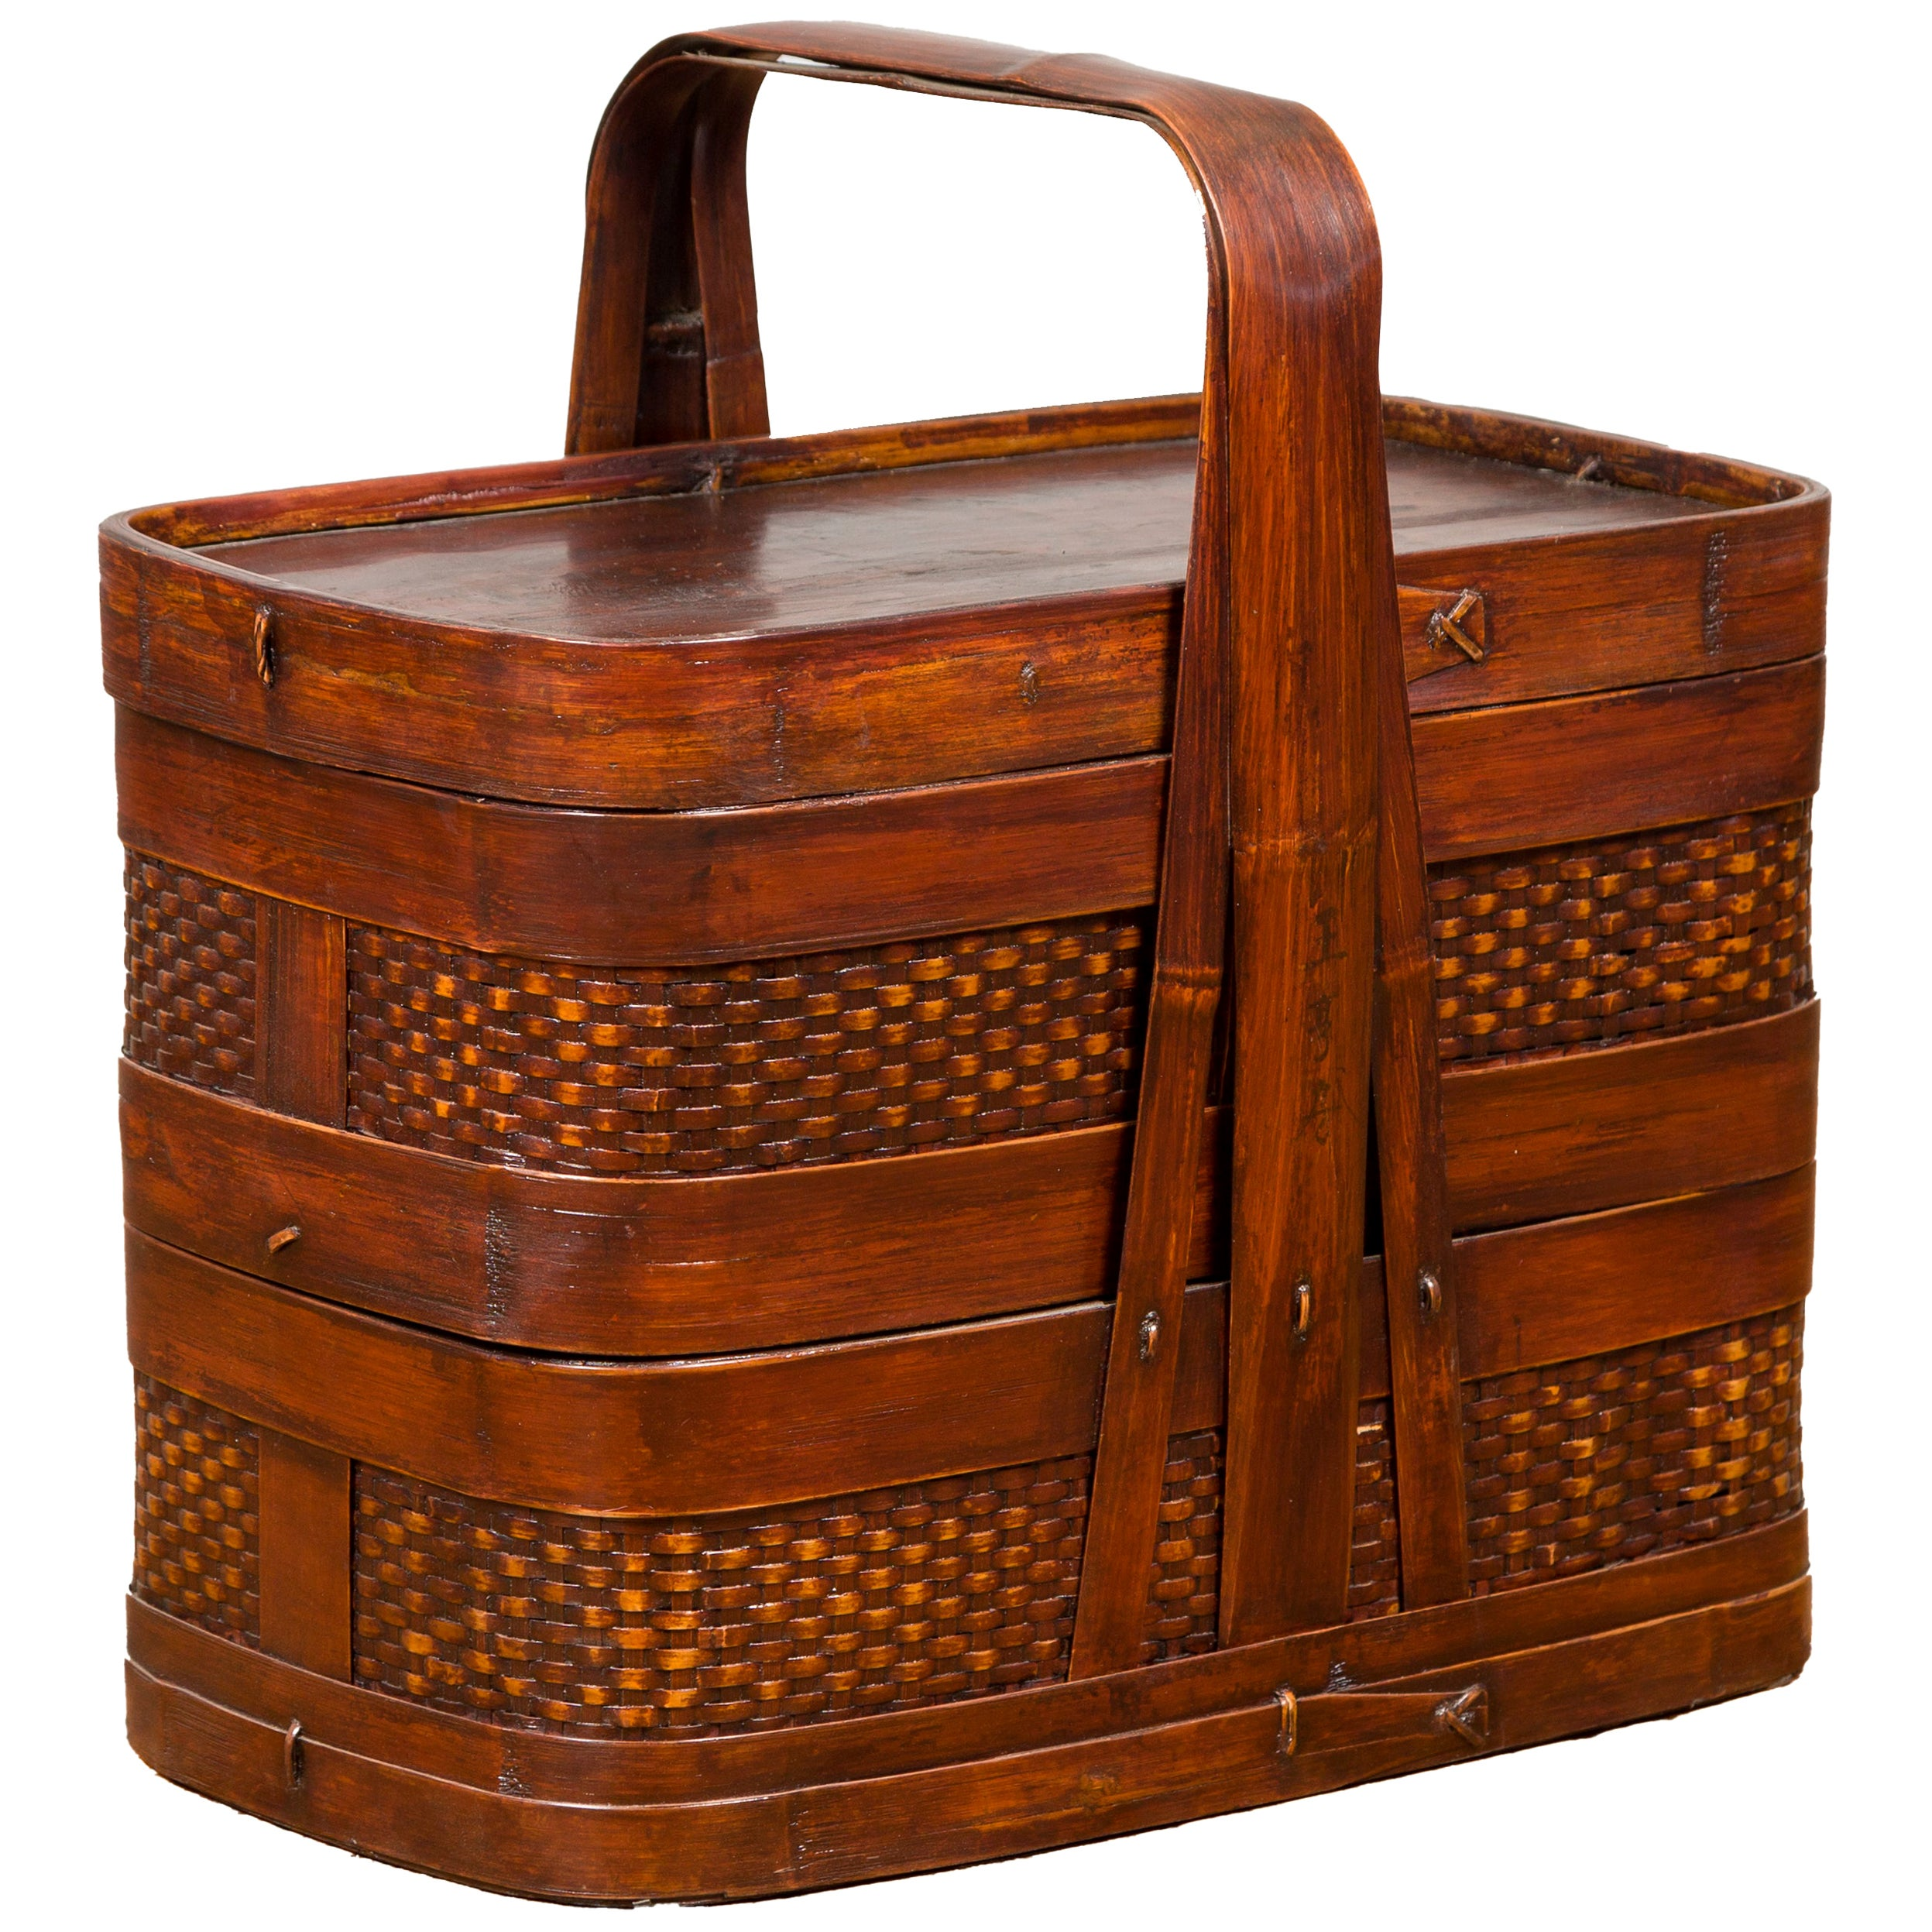 Chinese Vintage Two-Tiered Bamboo and Rattan Lunch Basket with Large Handle